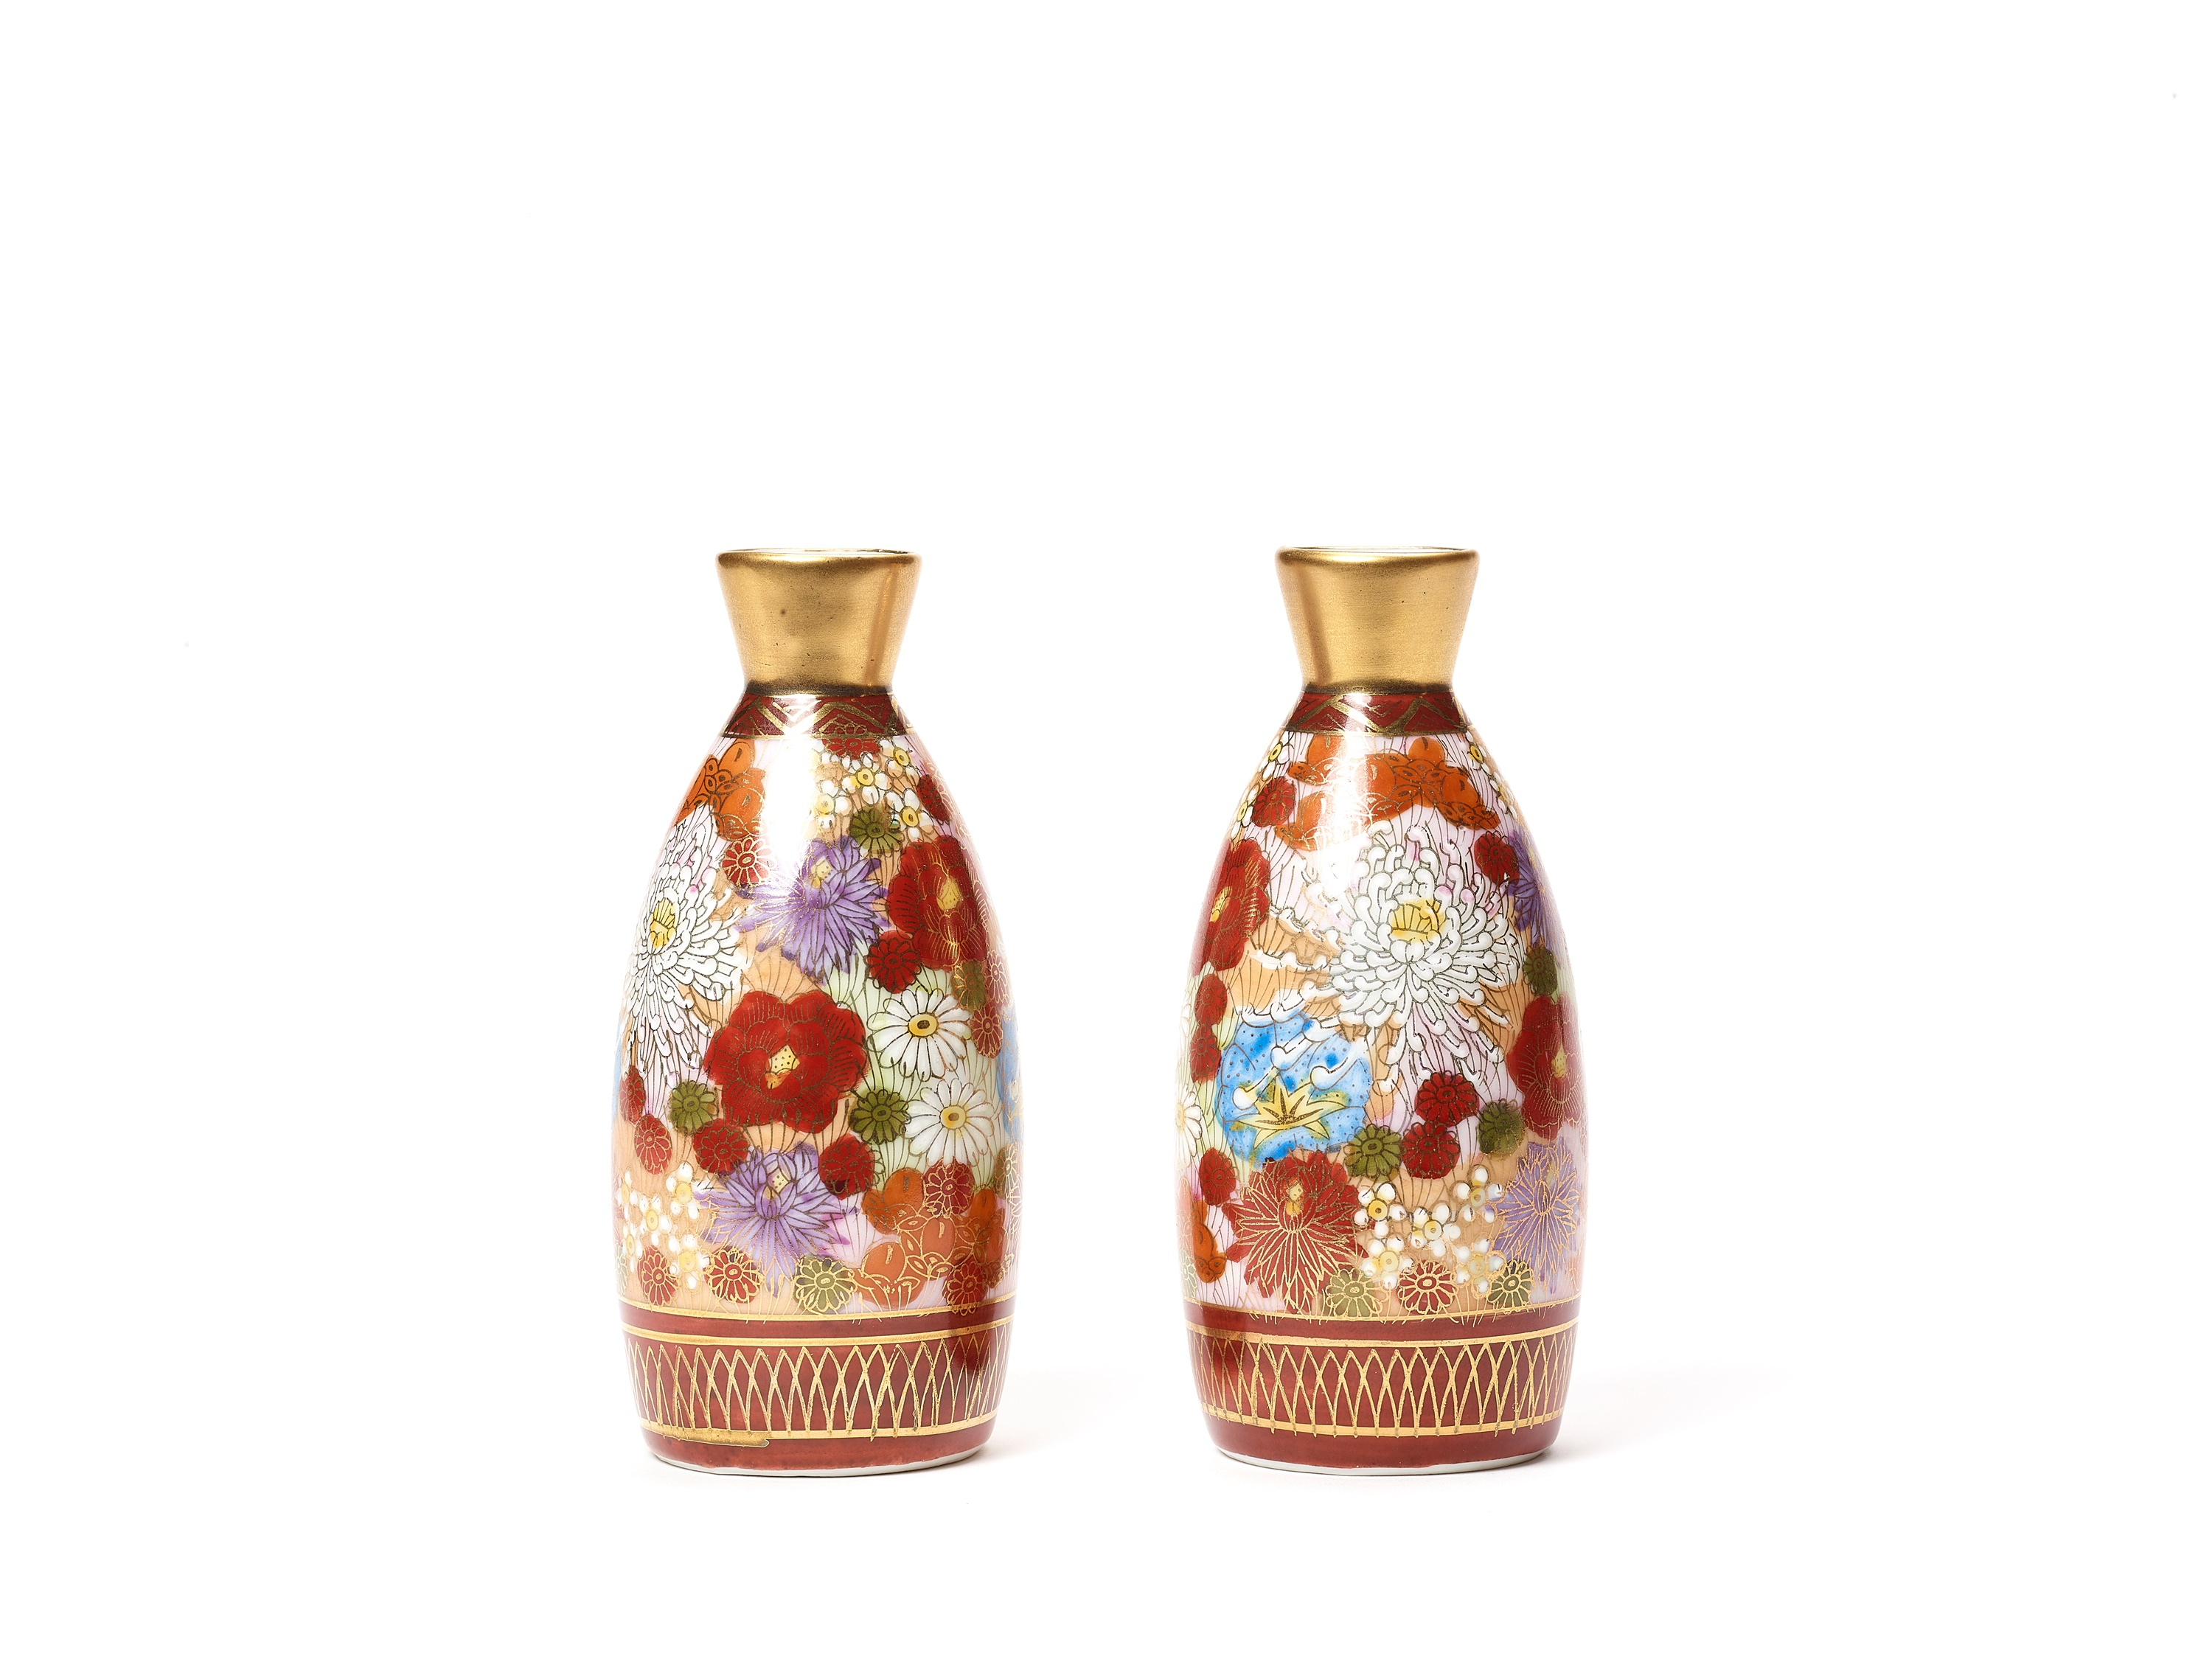 TWO SMALL VASES, SIGNED SHUSAN, AND FOUR SAKE CUPS WITH FLORAL DECORATIONS - Image 2 of 8